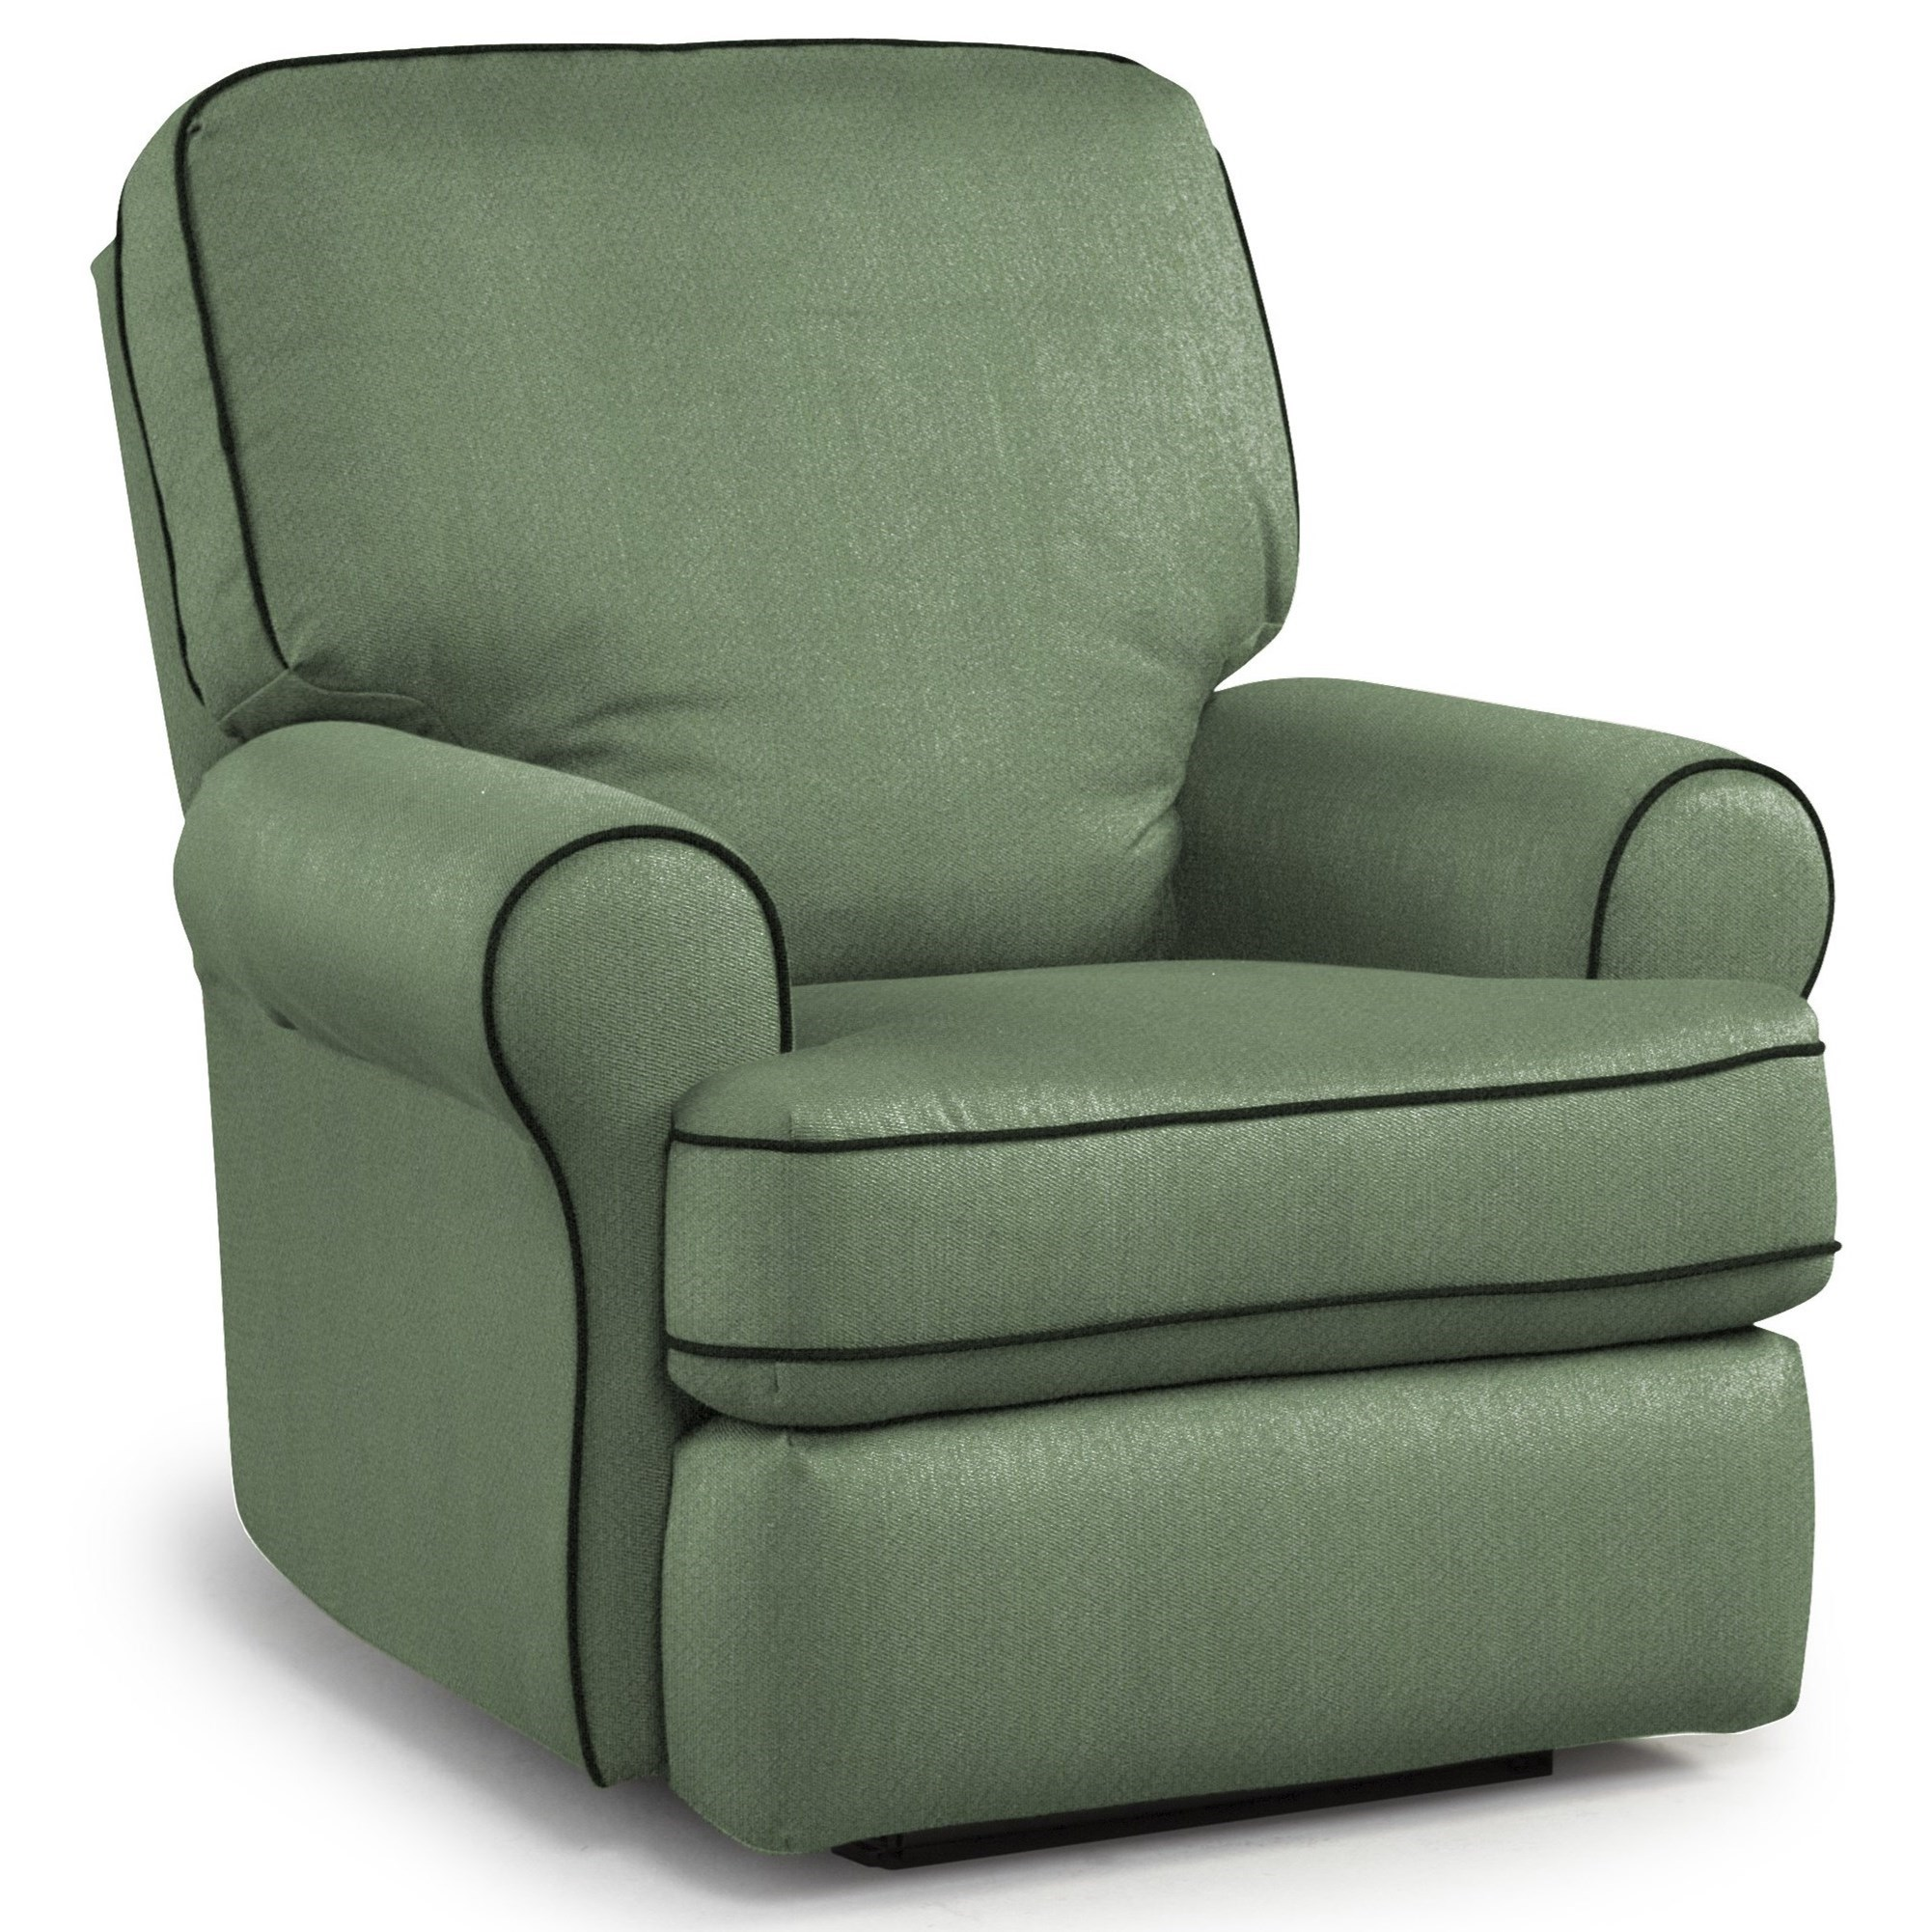 Tryp Swivel Glider Recliner by Best Home Furnishings at Walker's Furniture